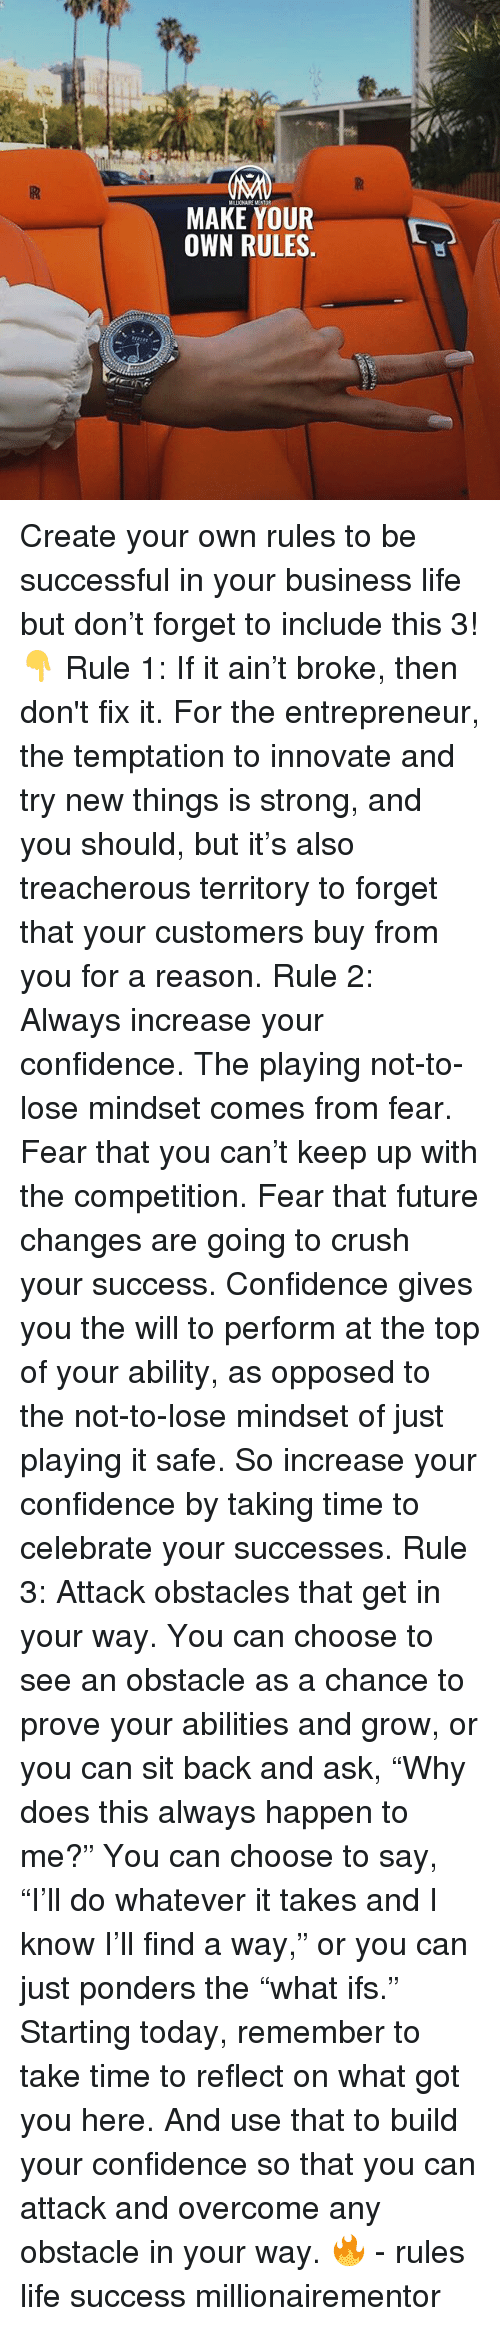 """Confidence, Crush, and Future: MAKE YOUR  OWN RULES. Create your own rules to be successful in your business life but don't forget to include this 3!👇 Rule 1: If it ain't broke, then don't fix it. For the entrepreneur, the temptation to innovate and try new things is strong, and you should, but it's also treacherous territory to forget that your customers buy from you for a reason. Rule 2: Always increase your confidence. The playing not-to-lose mindset comes from fear. Fear that you can't keep up with the competition. Fear that future changes are going to crush your success. Confidence gives you the will to perform at the top of your ability, as opposed to the not-to-lose mindset of just playing it safe. So increase your confidence by taking time to celebrate your successes. Rule 3: Attack obstacles that get in your way. You can choose to see an obstacle as a chance to prove your abilities and grow, or you can sit back and ask, """"Why does this always happen to me?"""" You can choose to say, """"I'll do whatever it takes and I know I'll find a way,"""" or you can just ponders the """"what ifs."""" Starting today, remember to take time to reflect on what got you here. And use that to build your confidence so that you can attack and overcome any obstacle in your way. 🔥 - rules life success millionairementor"""